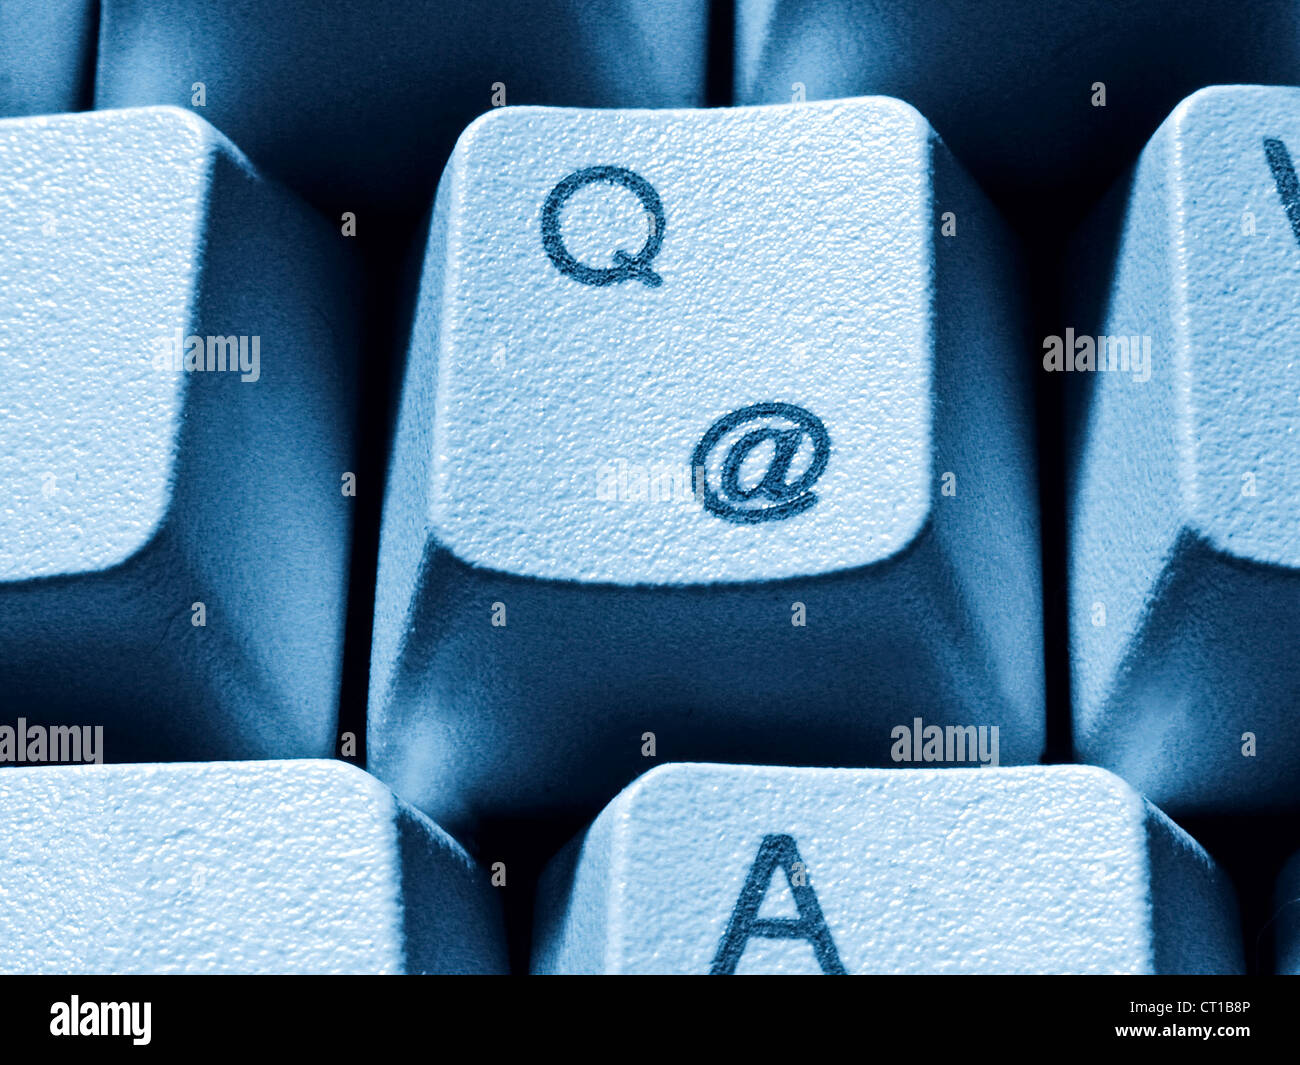 Q - key with @ sign - Stock Image